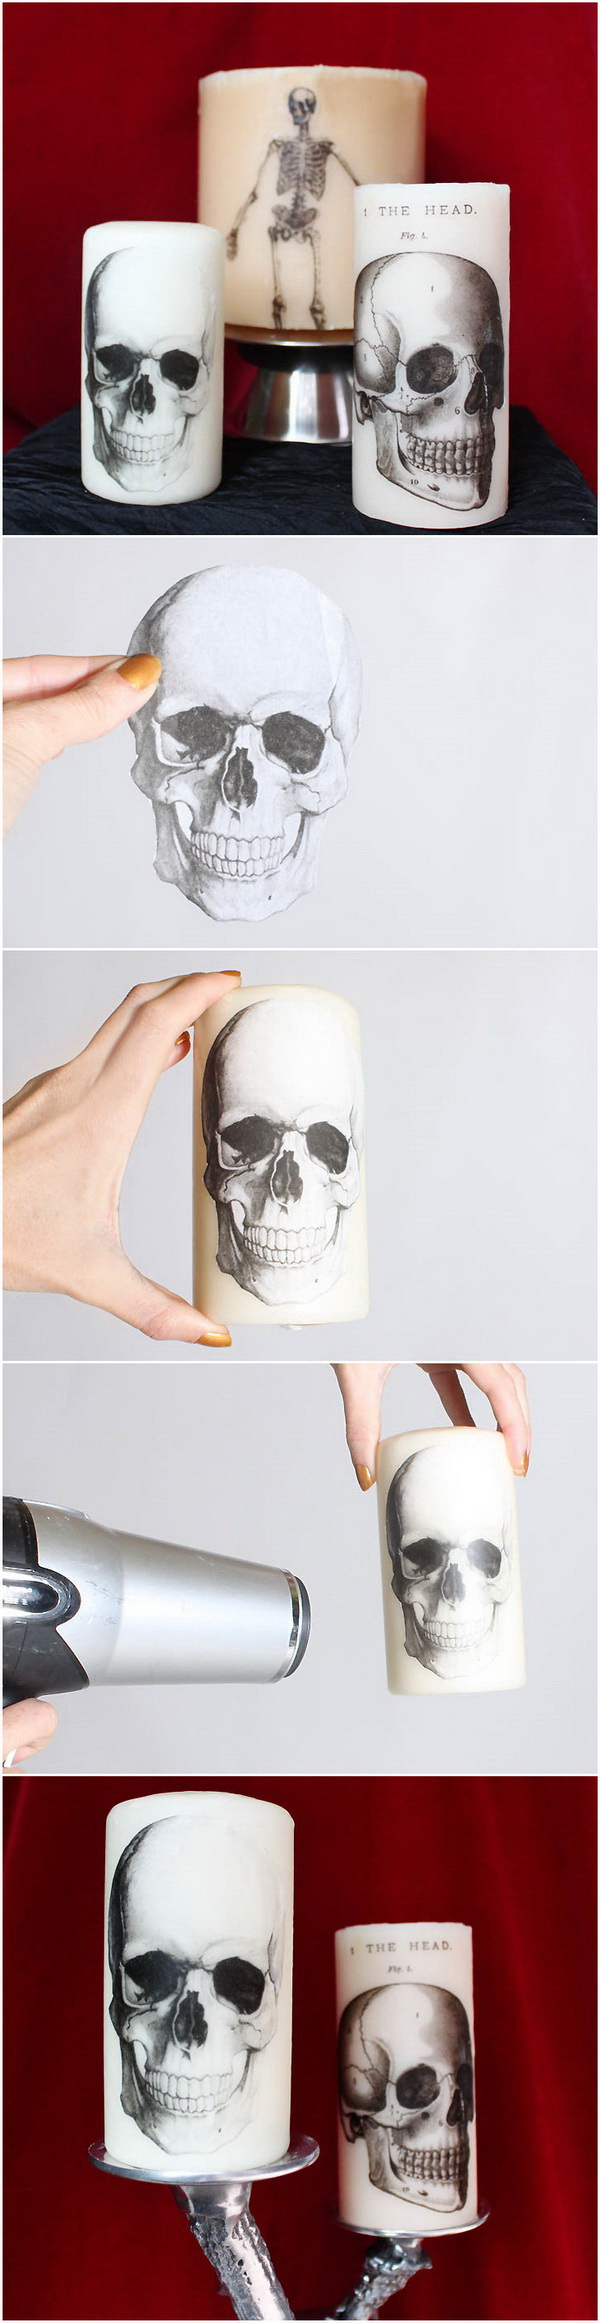 DIY Printed Halloween Candles. Candles make great decorations and add pretty light to a room!